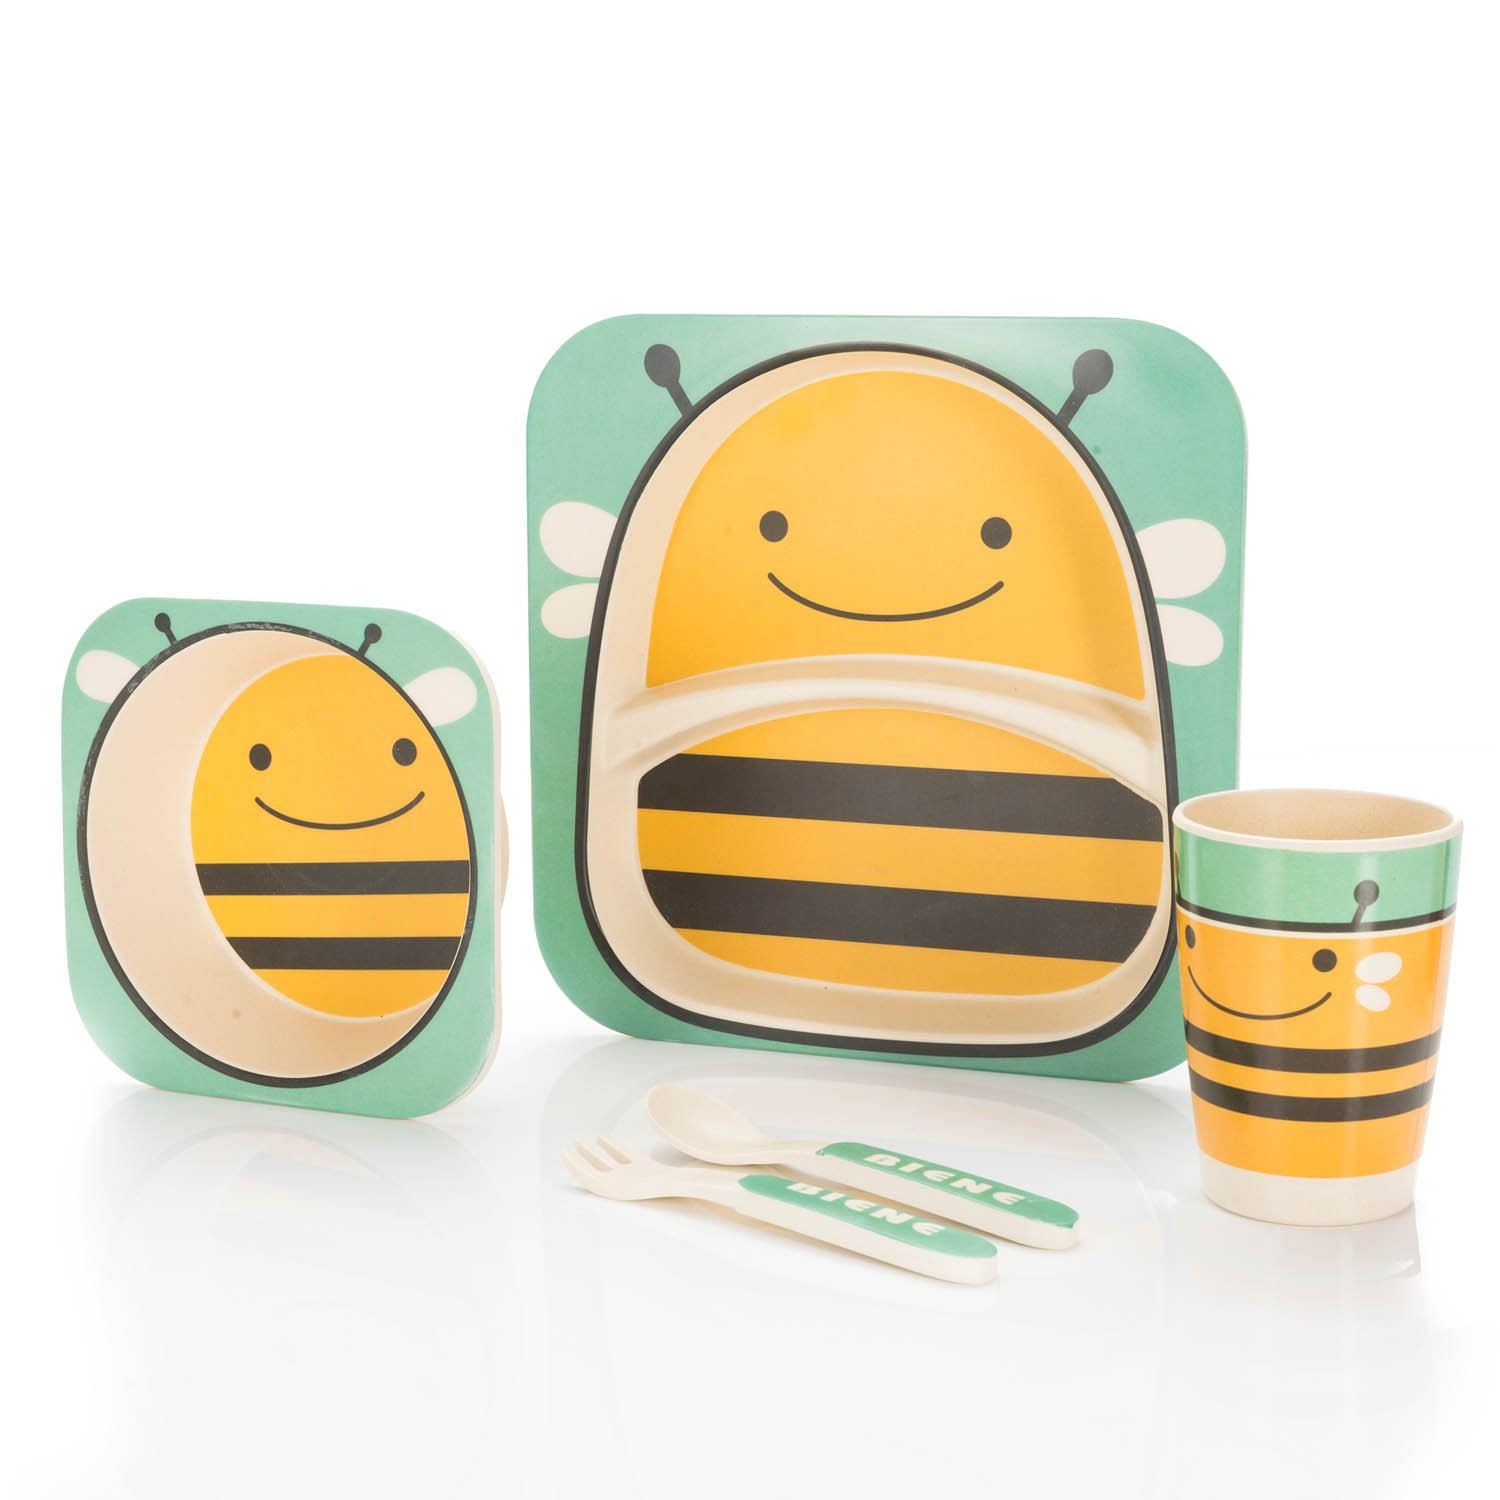 Bamboo-Kids-Meal-Set-Eco-Friendly-securite-alimentaire-alimentation-5pcs-Cuillere-Plate-Set-Toddler miniature 6